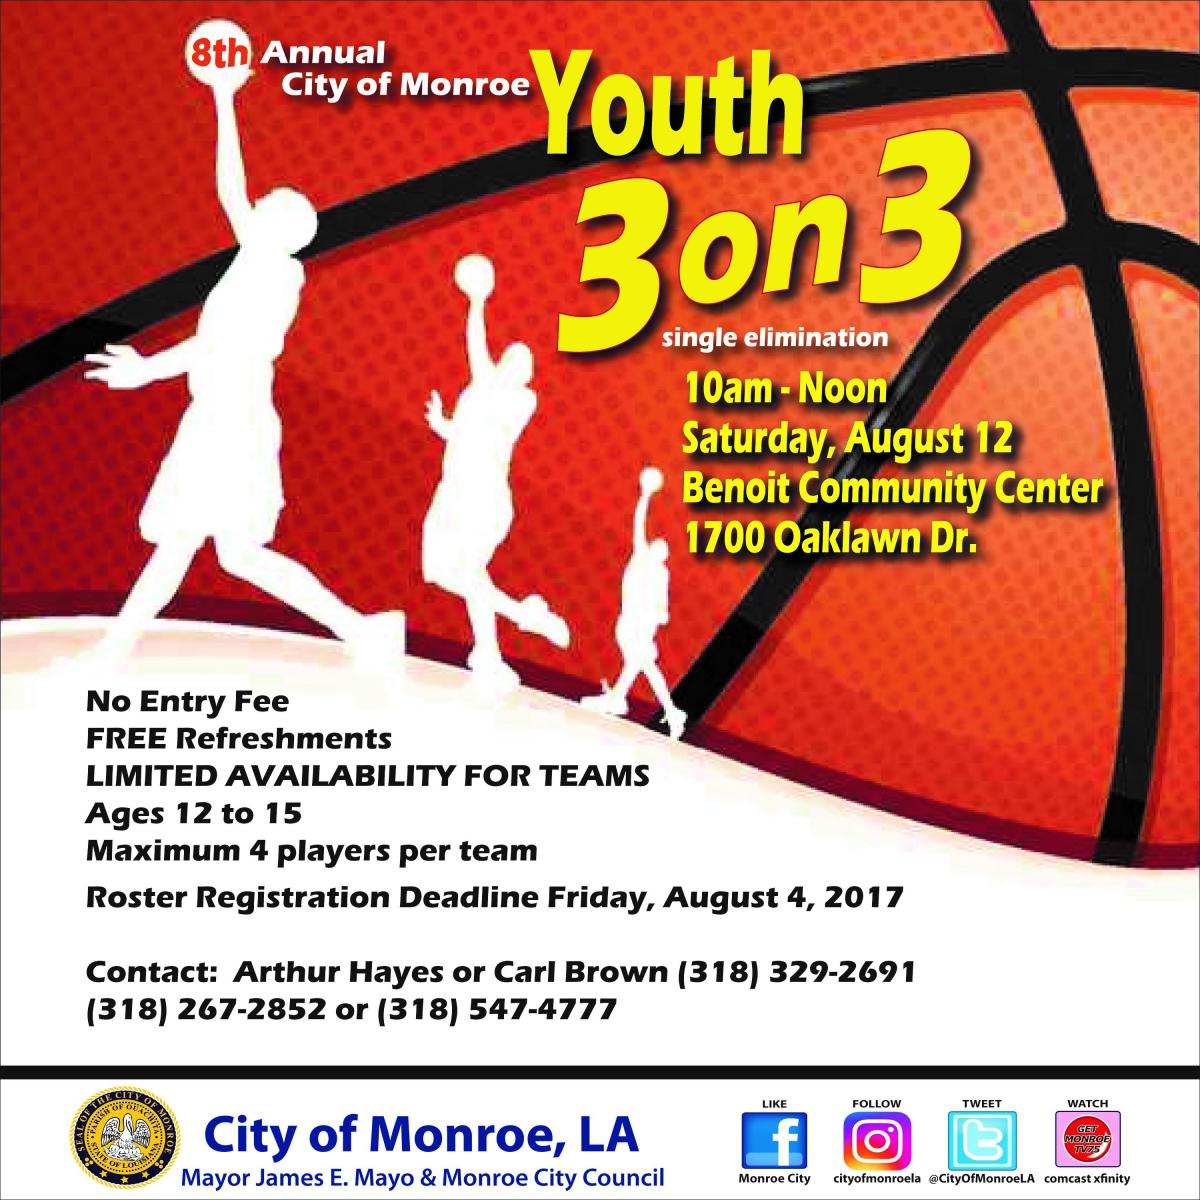 Youth 3 On Basketball Tournament